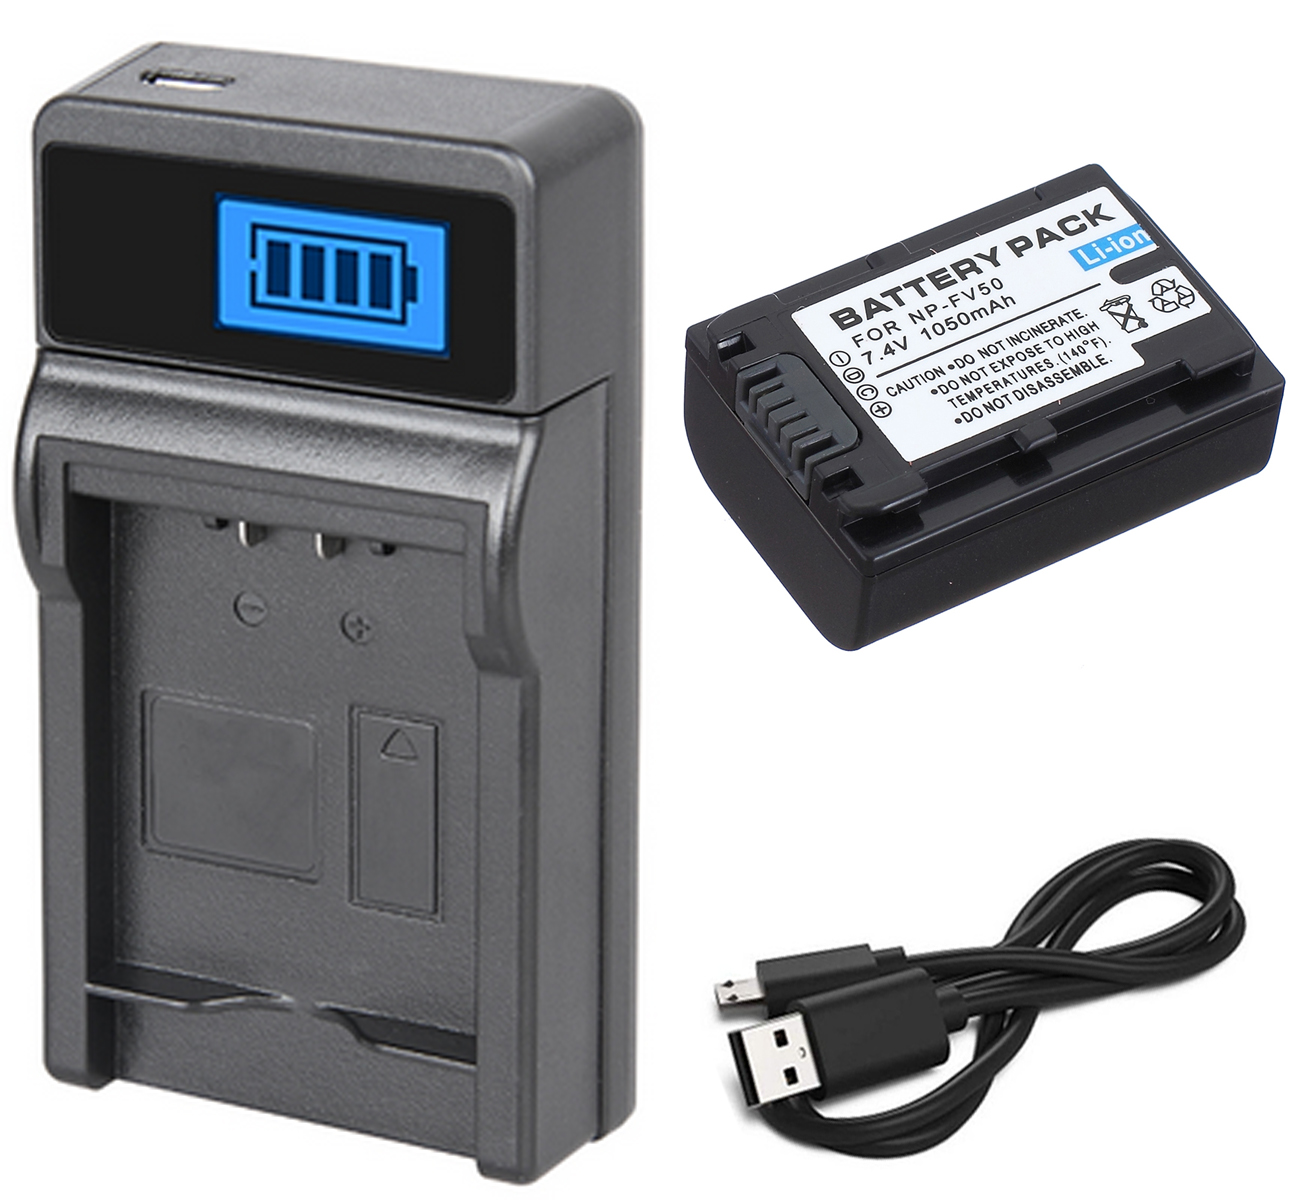 Battery Pack + Charger For Sony HDR-CX110E,HDR-CX130E,HDR-CX150E,HDR-CX160E,HDR-CX170E,HDR-CX180E,HDR-CX190E Handycam Camcorder